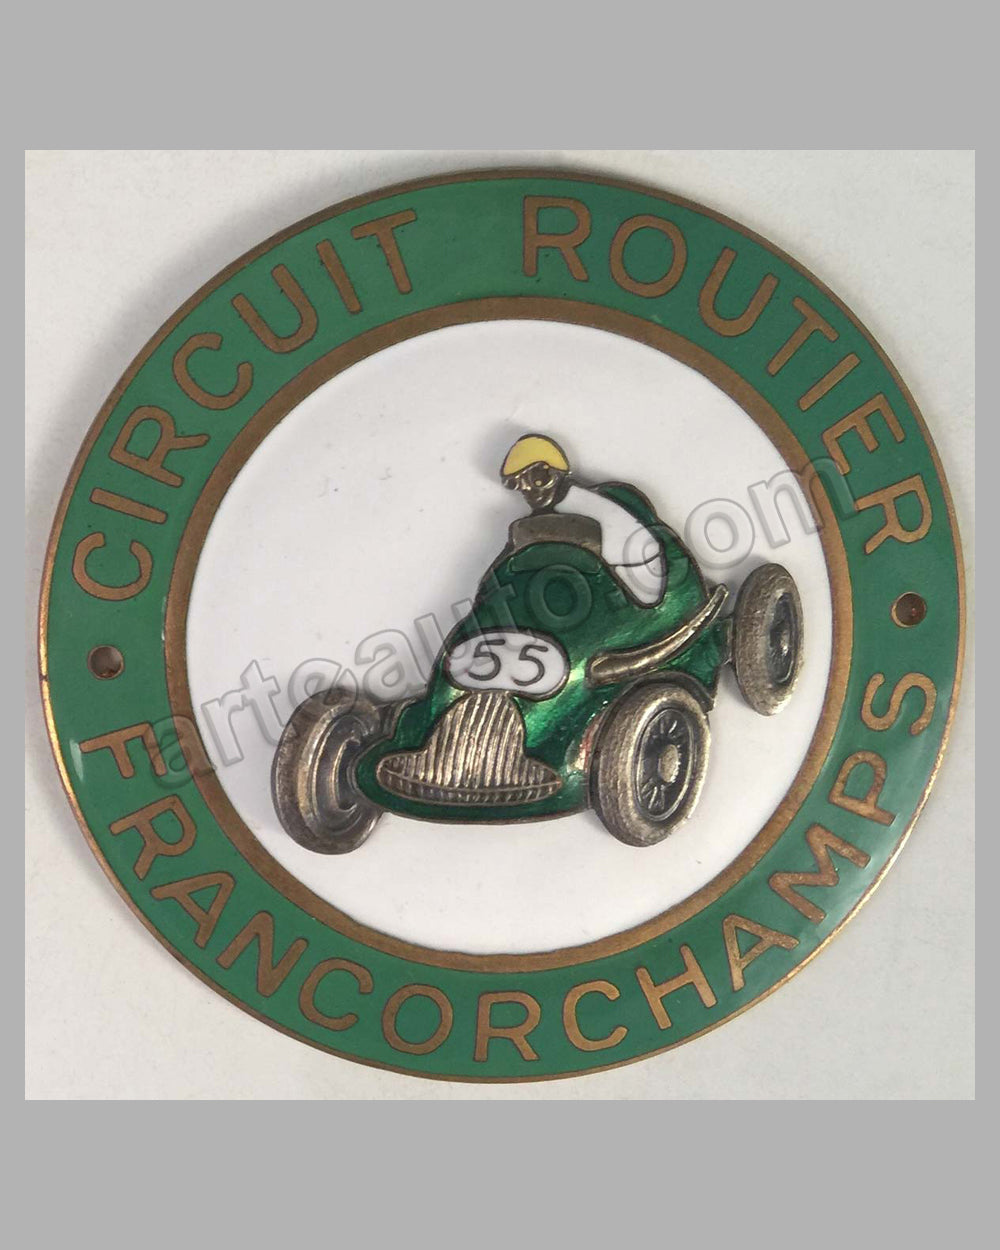 Circuit Routier Francorchamps race track grill badge, 1950's